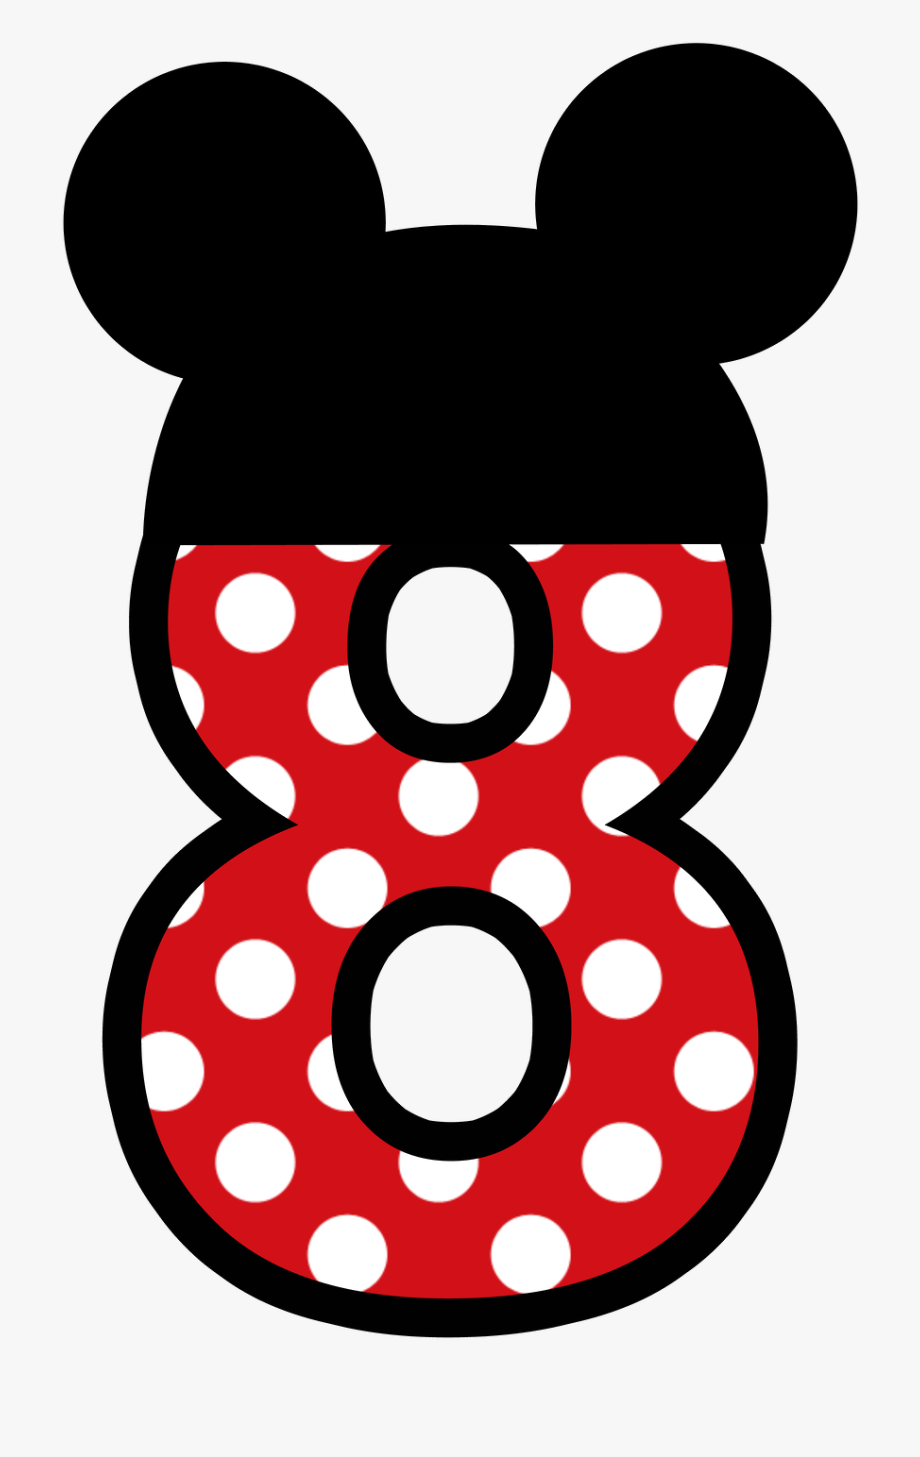 Number 2 birthday clipart for a boy picture royalty free library Number 2 Clipart 2nd Birthday Boy - Number 0 Mickey Mouse ... picture royalty free library